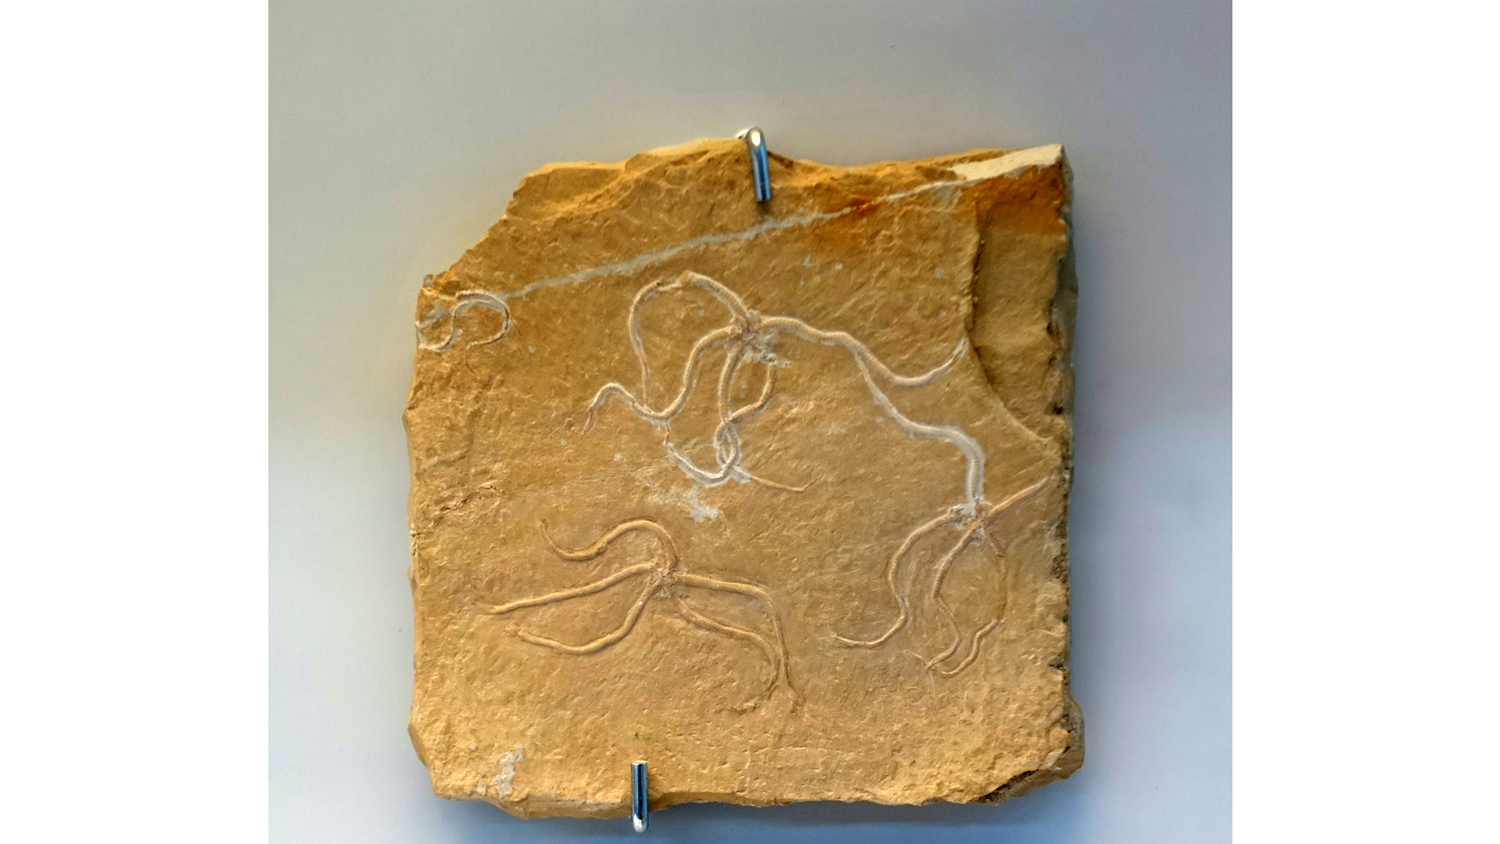 Photograph of Sinosura kehlheimense brittle stars on display at the Naturhistorisches Museum Nürnberg in Nuremberg, Germany